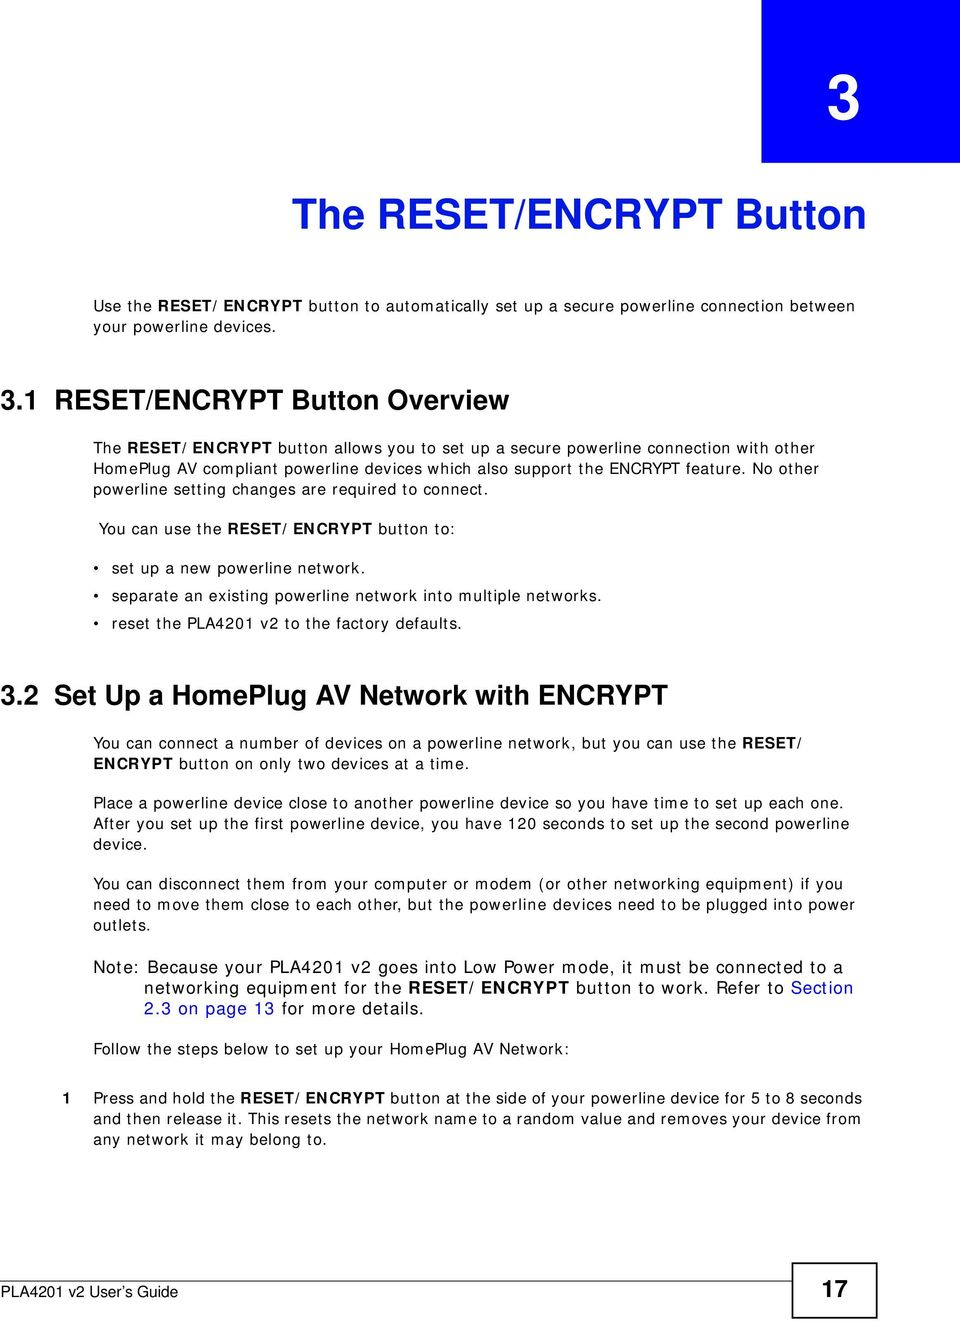 1 RESET/ENCRYPT Button Overview The RESET/ENCRYPT button allows you to set up a secure powerline connection with other HomePlug AV compliant powerline devices which also support the ENCRYPT feature.